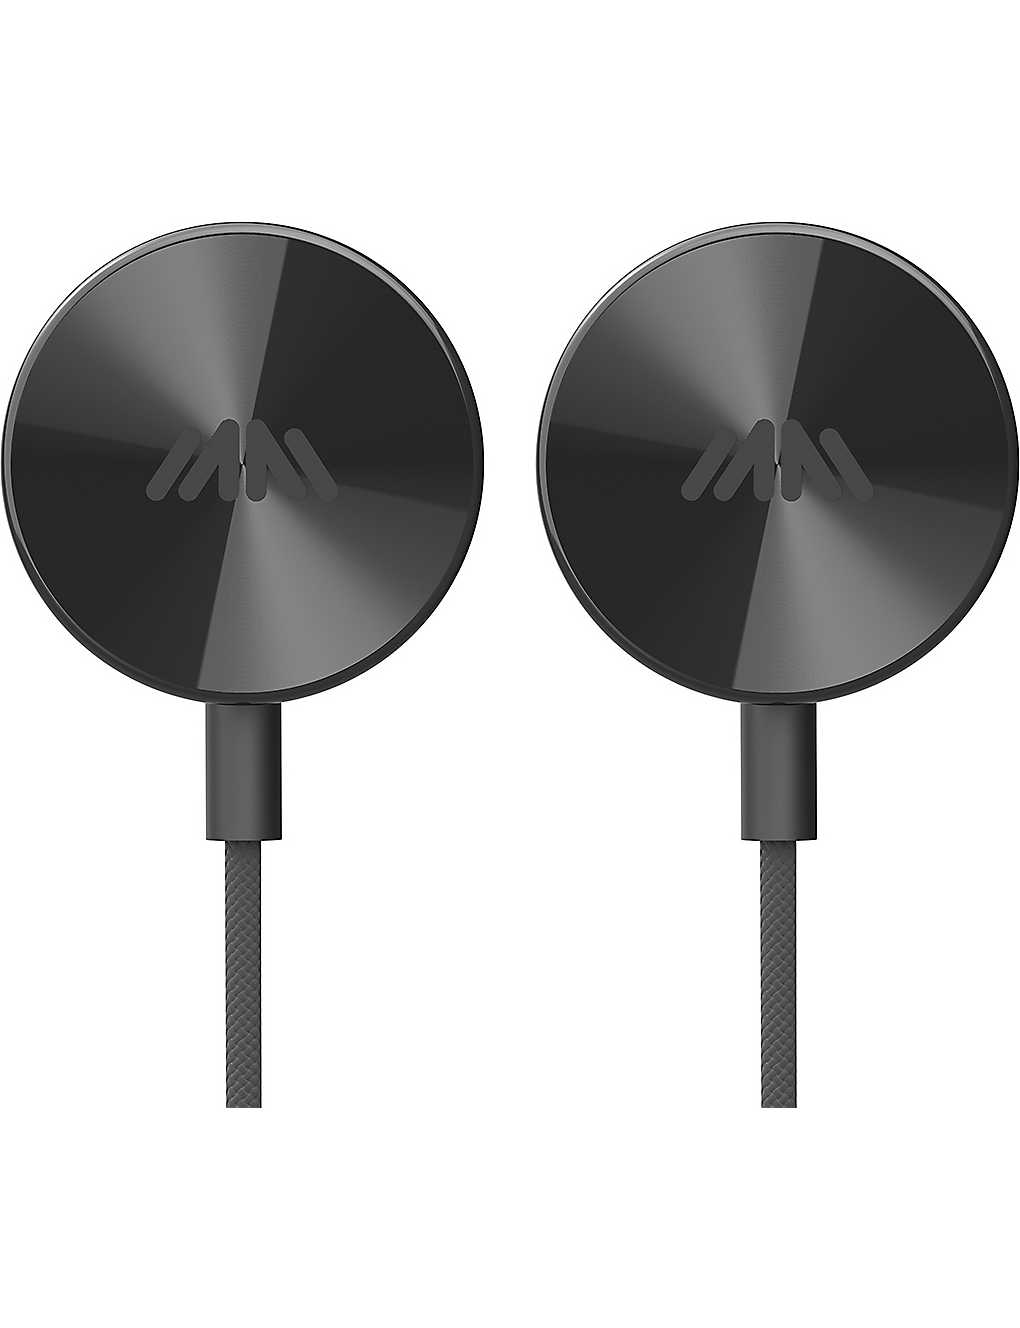 I.AM PLUS: i.am+ BUTTONS Bluetooth In-Ear Headphones